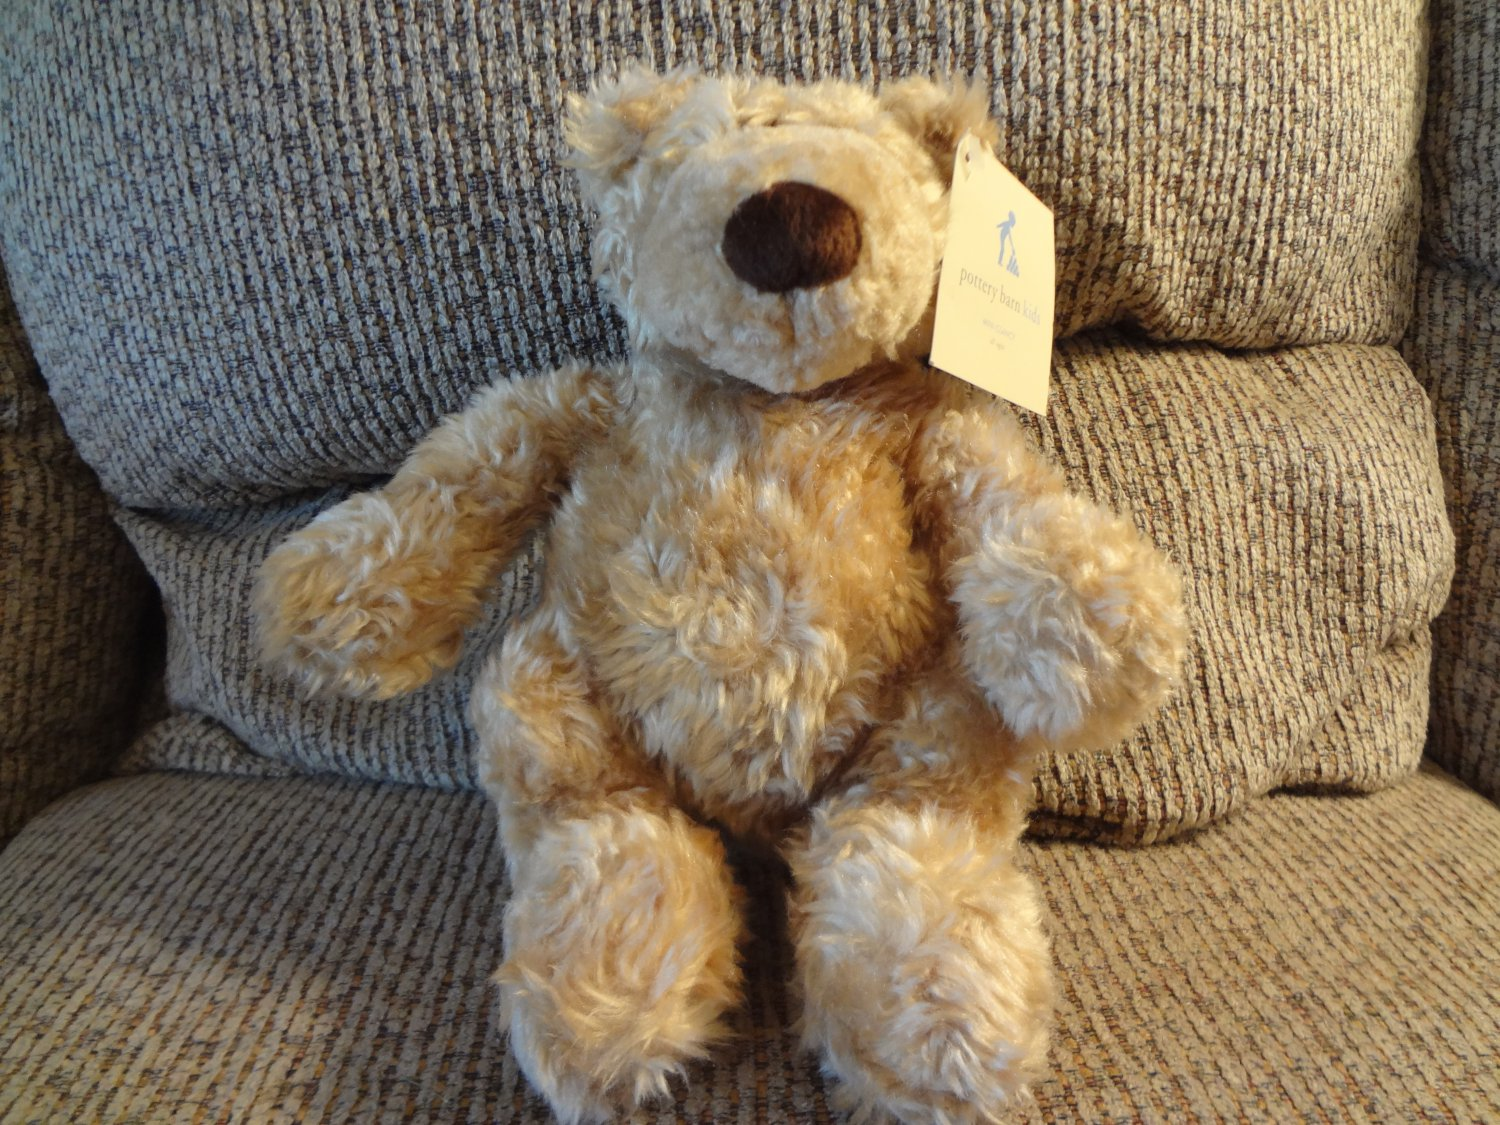 WT Pottery Barn Kids Gund #41334 Clancy Tan Soft Furry Teddy Bear Plush Lovey 11""